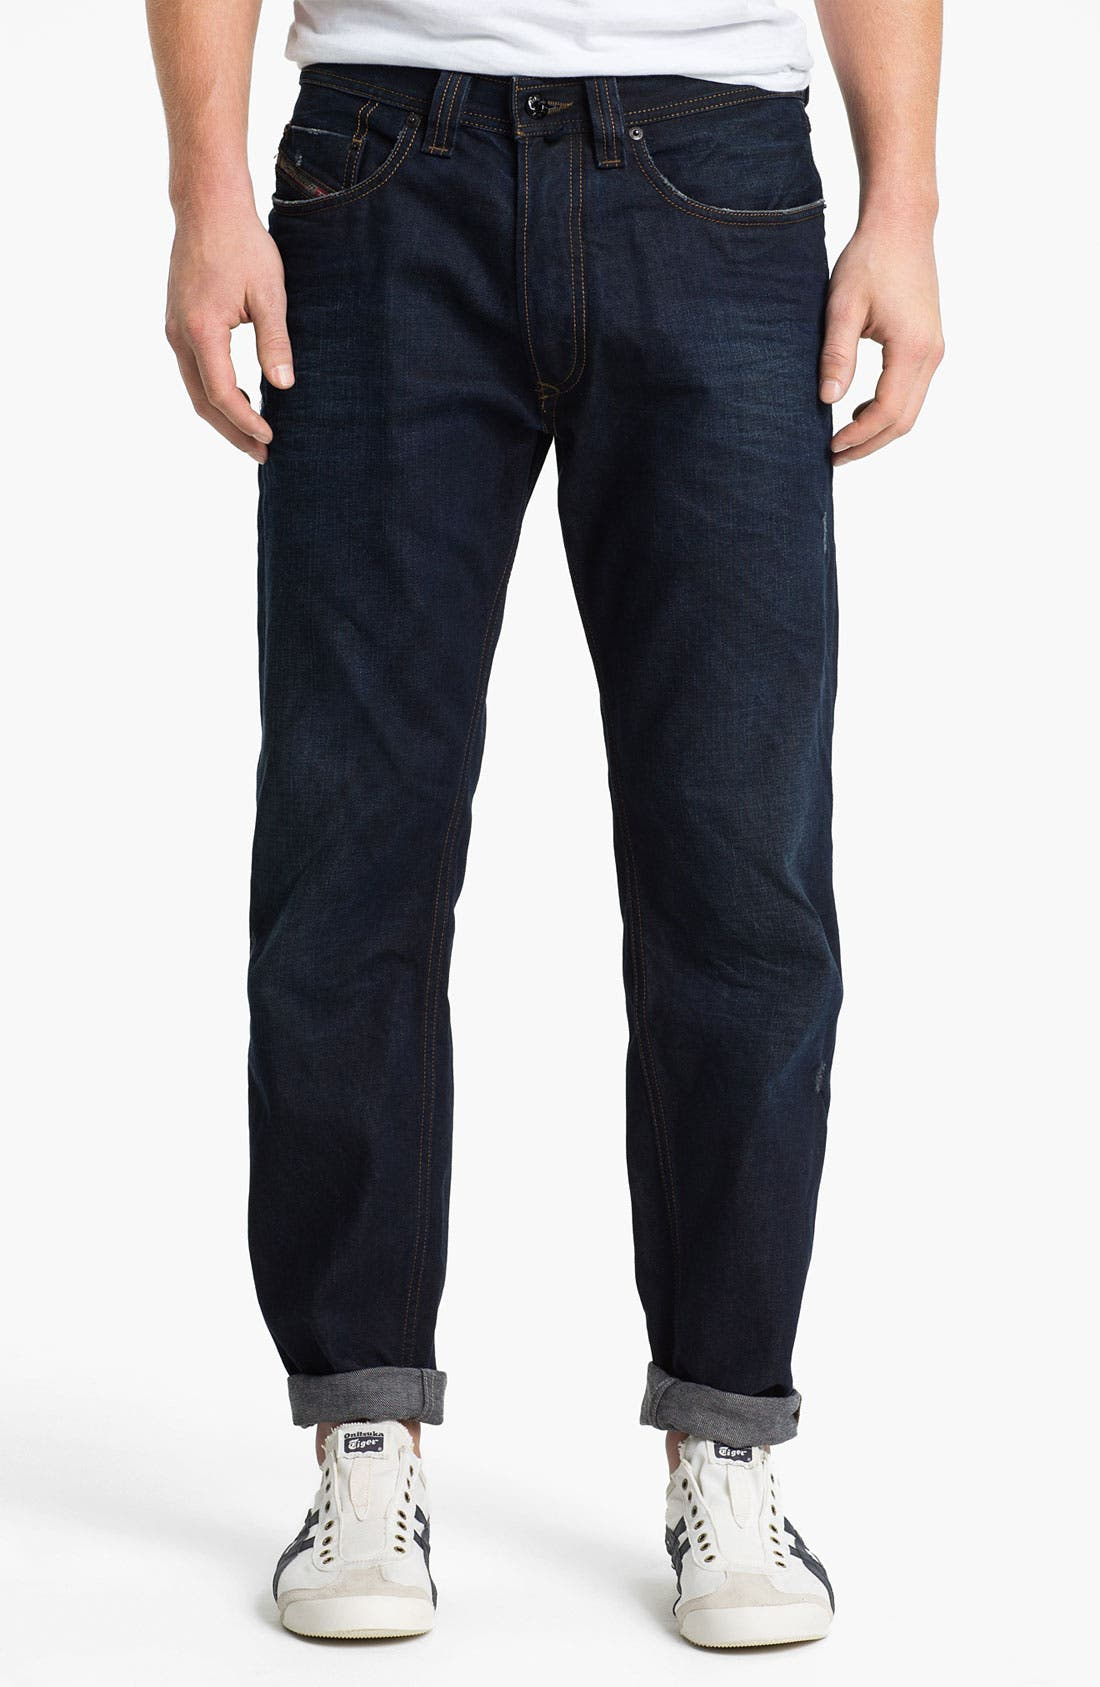 'Back in the Saddle' Relaxed Tapered Leg Jeans,                             Alternate thumbnail 2, color,                             0806X